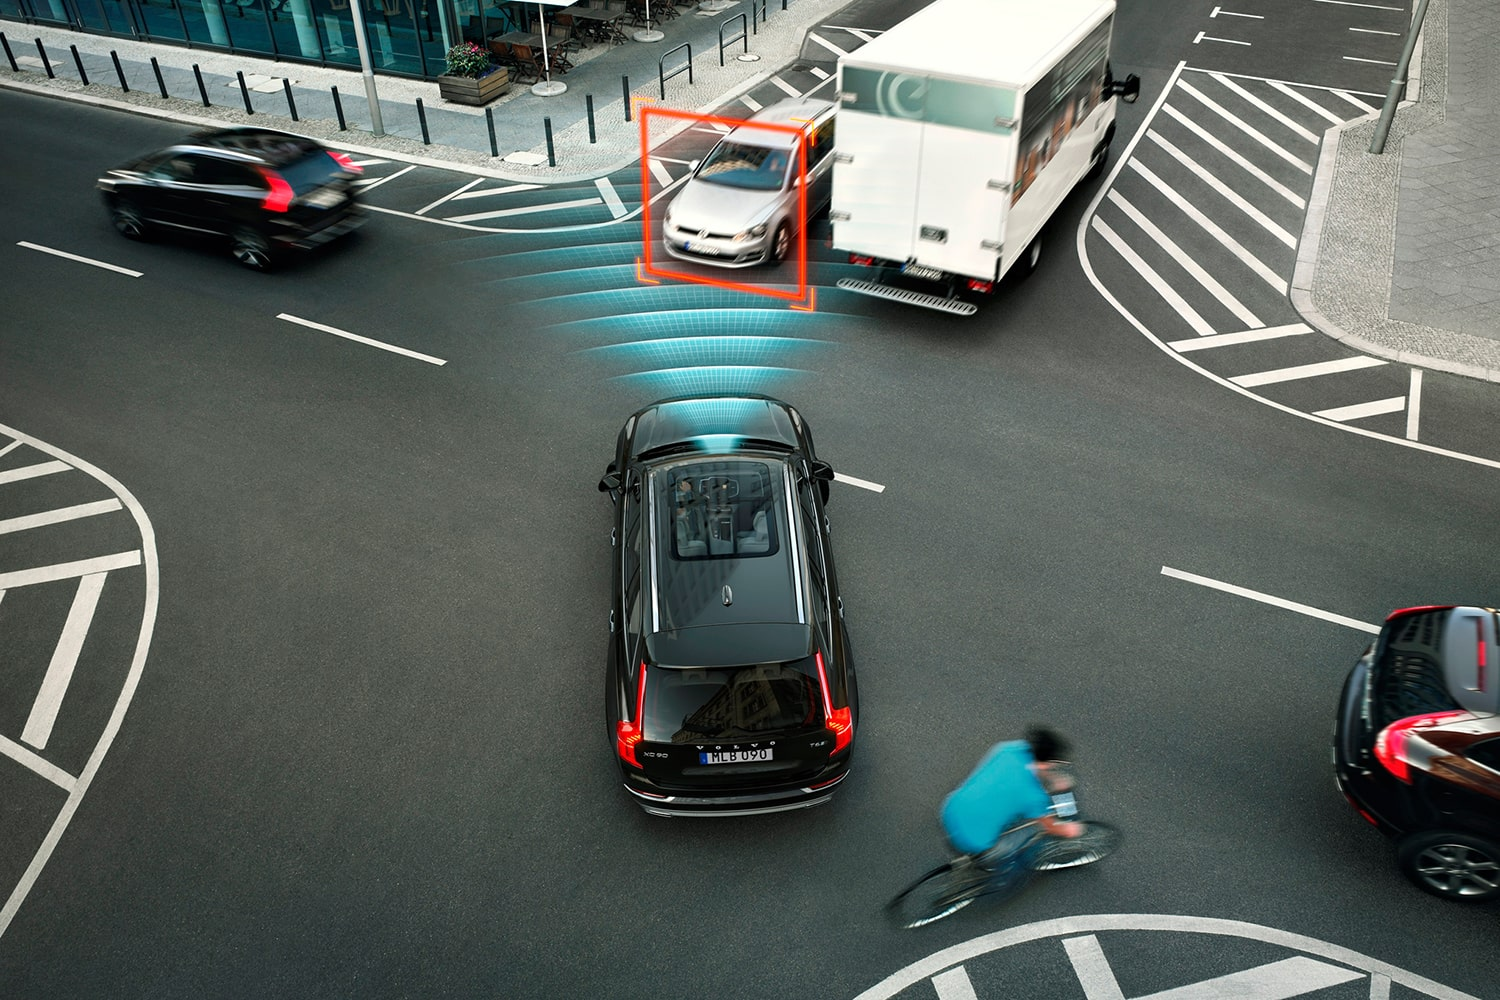 The rise of autonomous vehicles and the challenges ahead